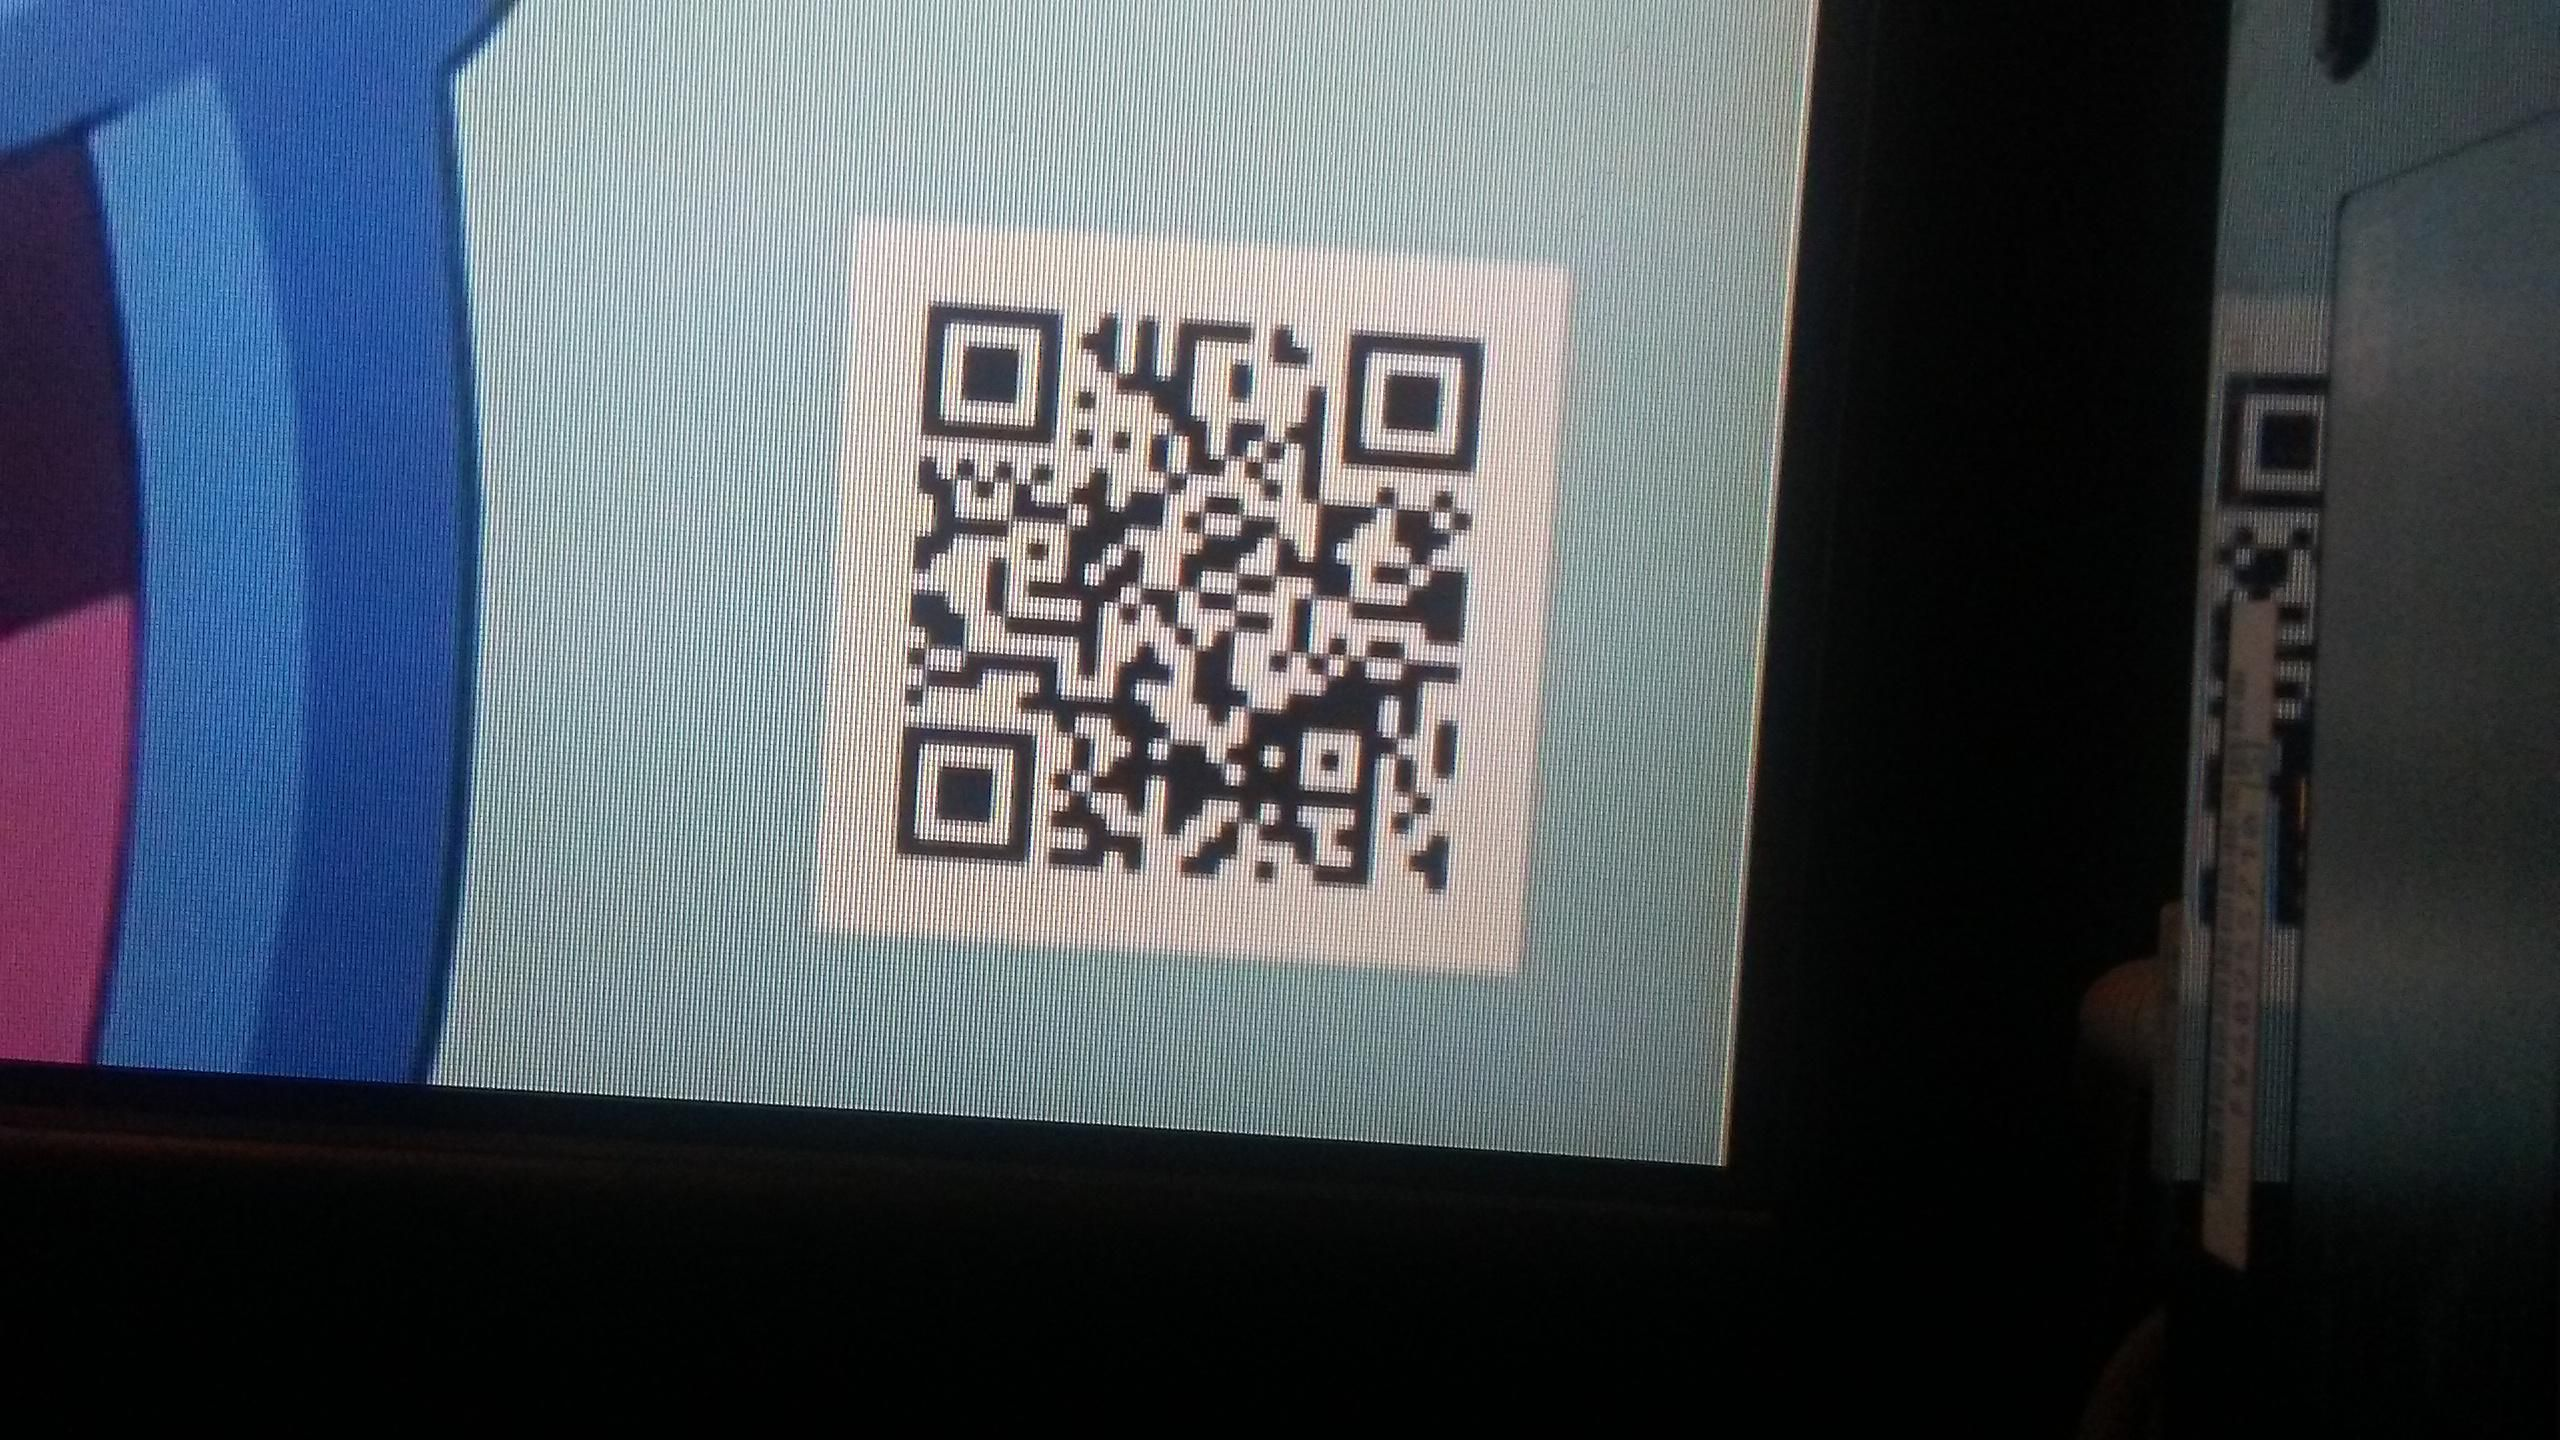 Pin Yokai Watch Qr Codes 5 Star Coin Images To Pinterest